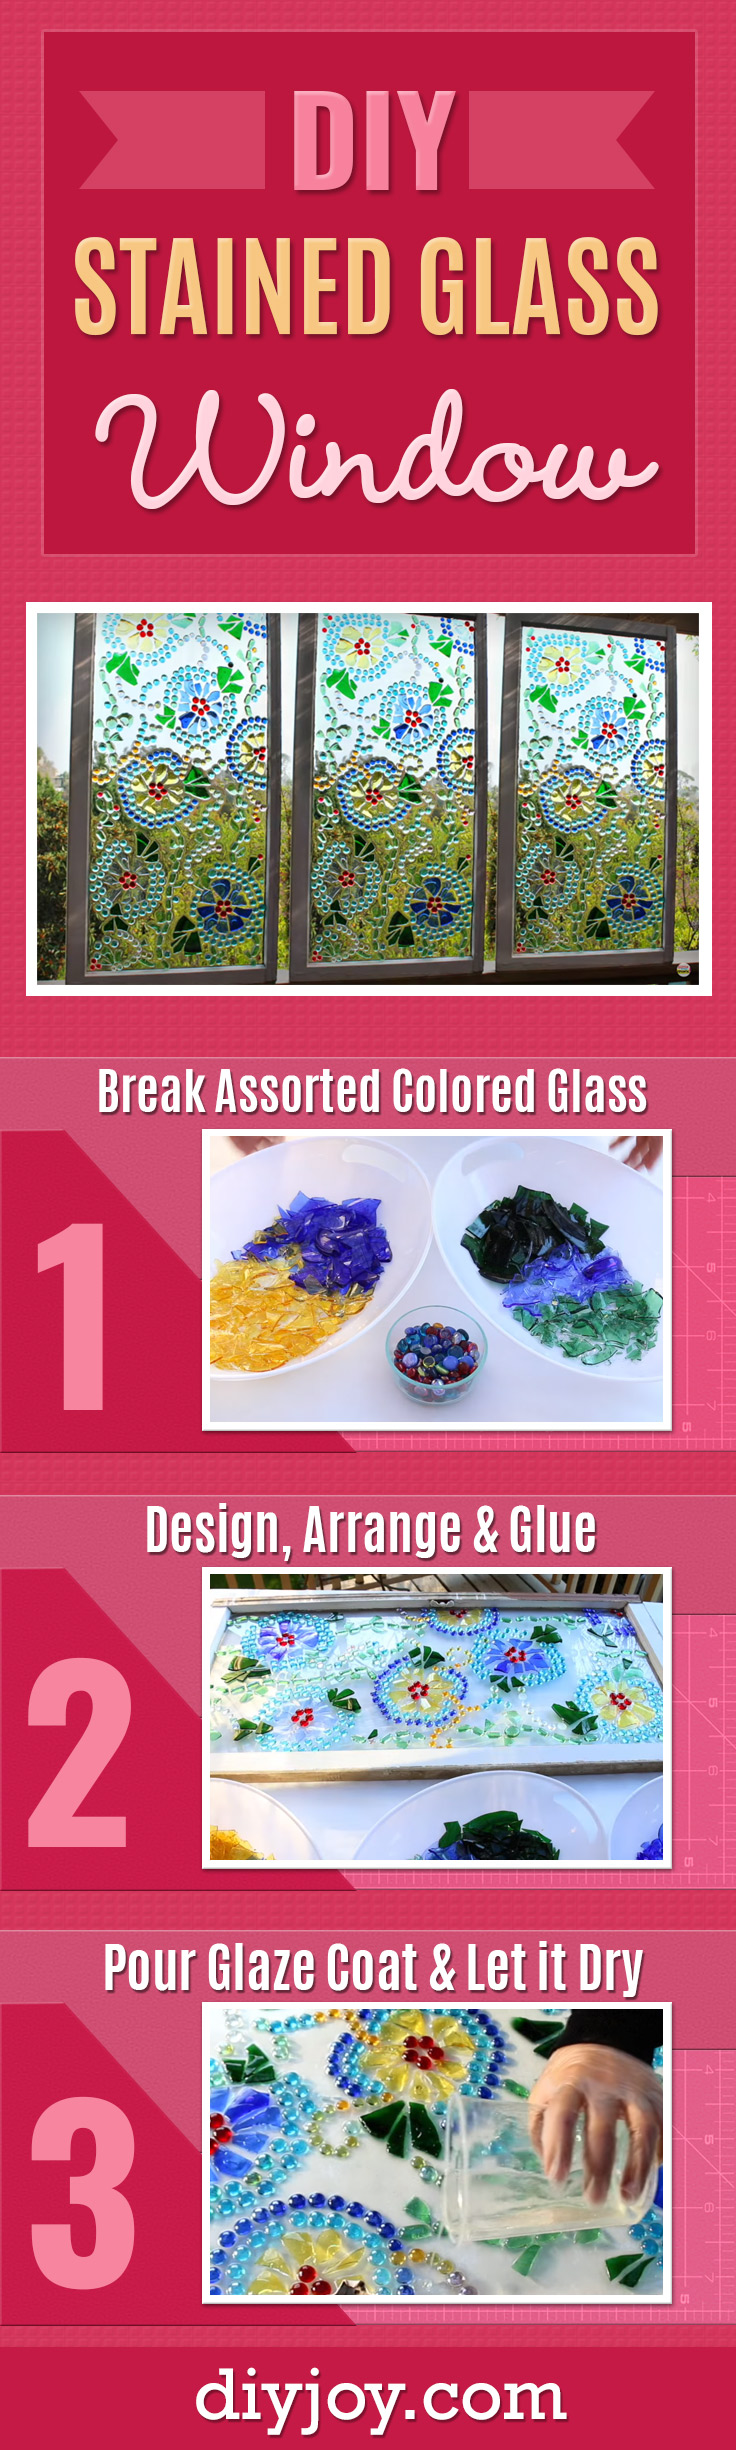 DIY Stained Glass Window - Cheap Home Decor Ideas on A Budget - How To Make Stained Glass Easy - DIY Christmas Gifts